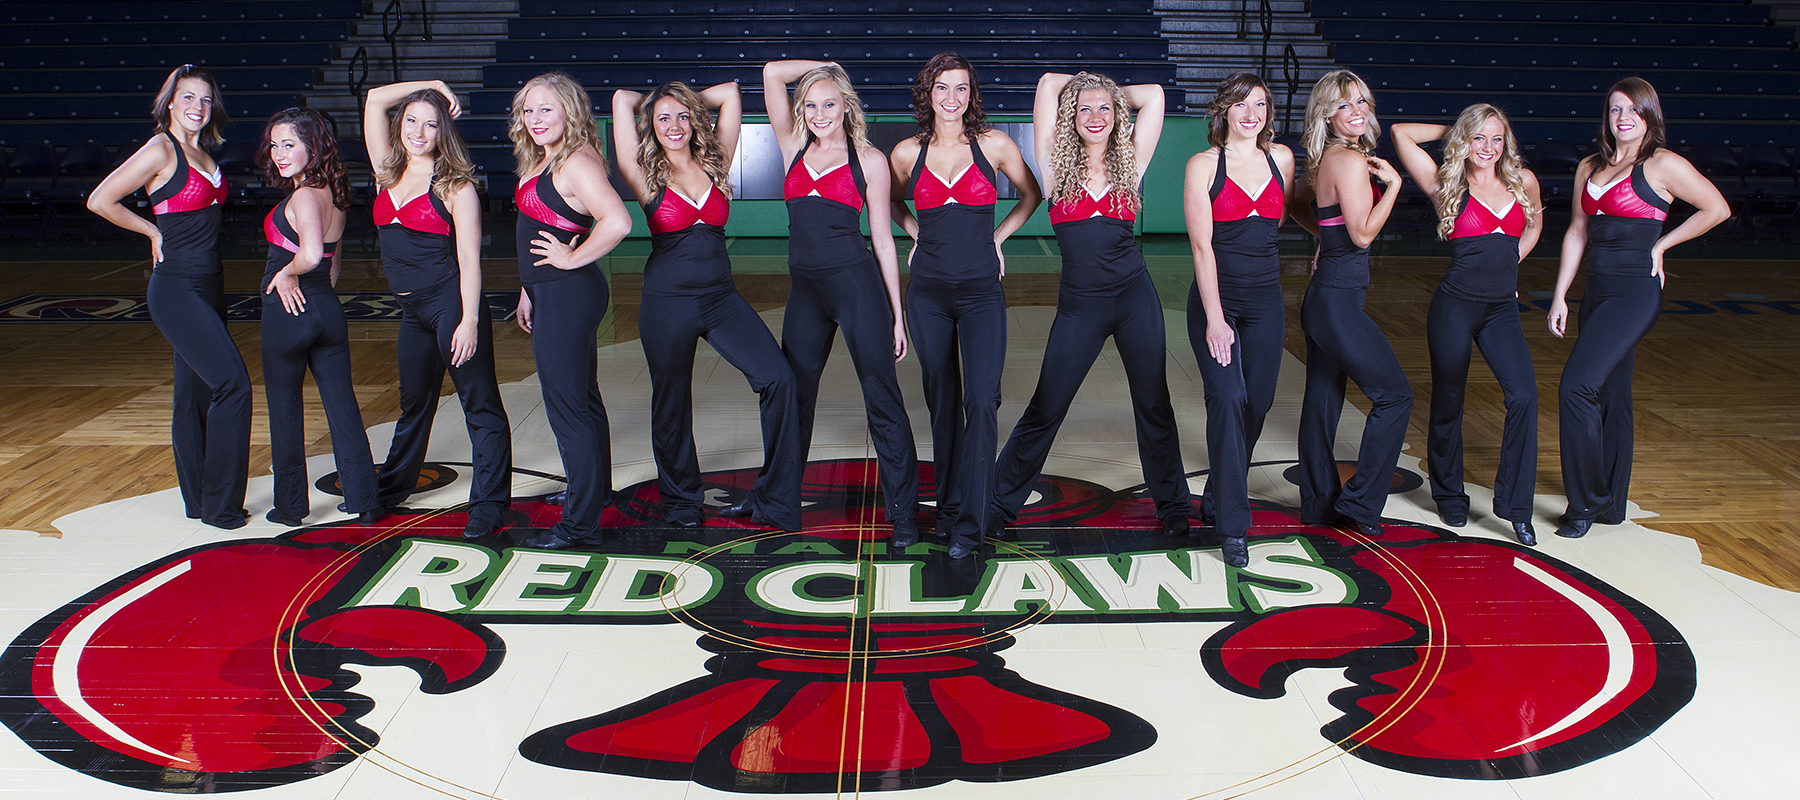 nba dancers dating players The chicago bulls became the third nba the newly founded chicago bulls were allowed to acquire players from the shared an odd tradition dating to the.